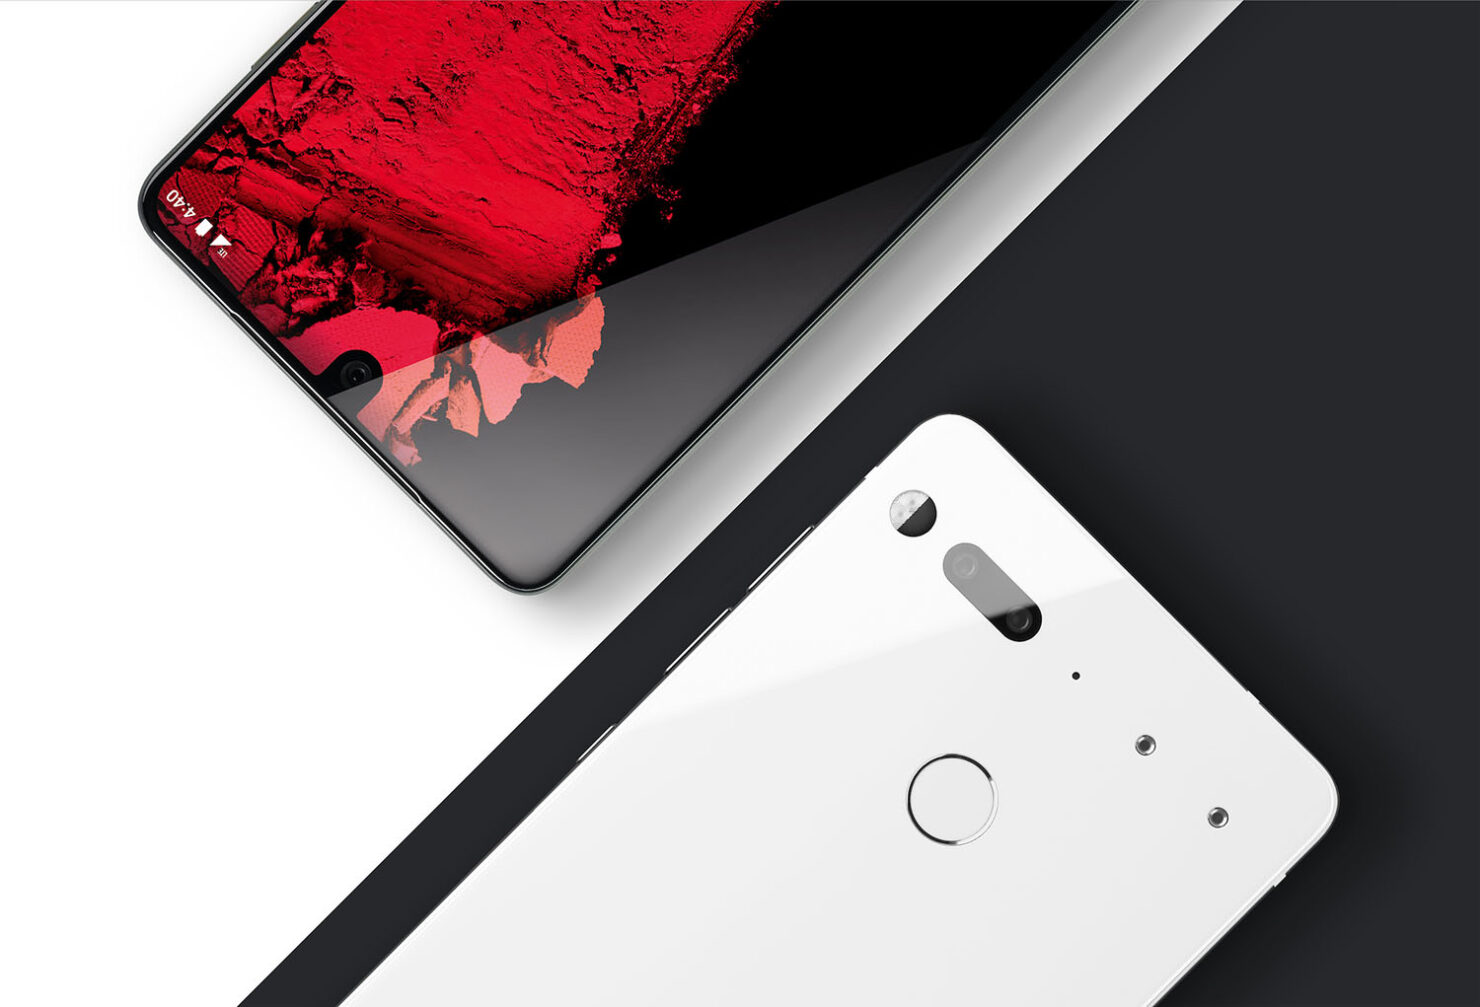 Essential PH-1 Successor in Early Testing Phase, Confirms Company